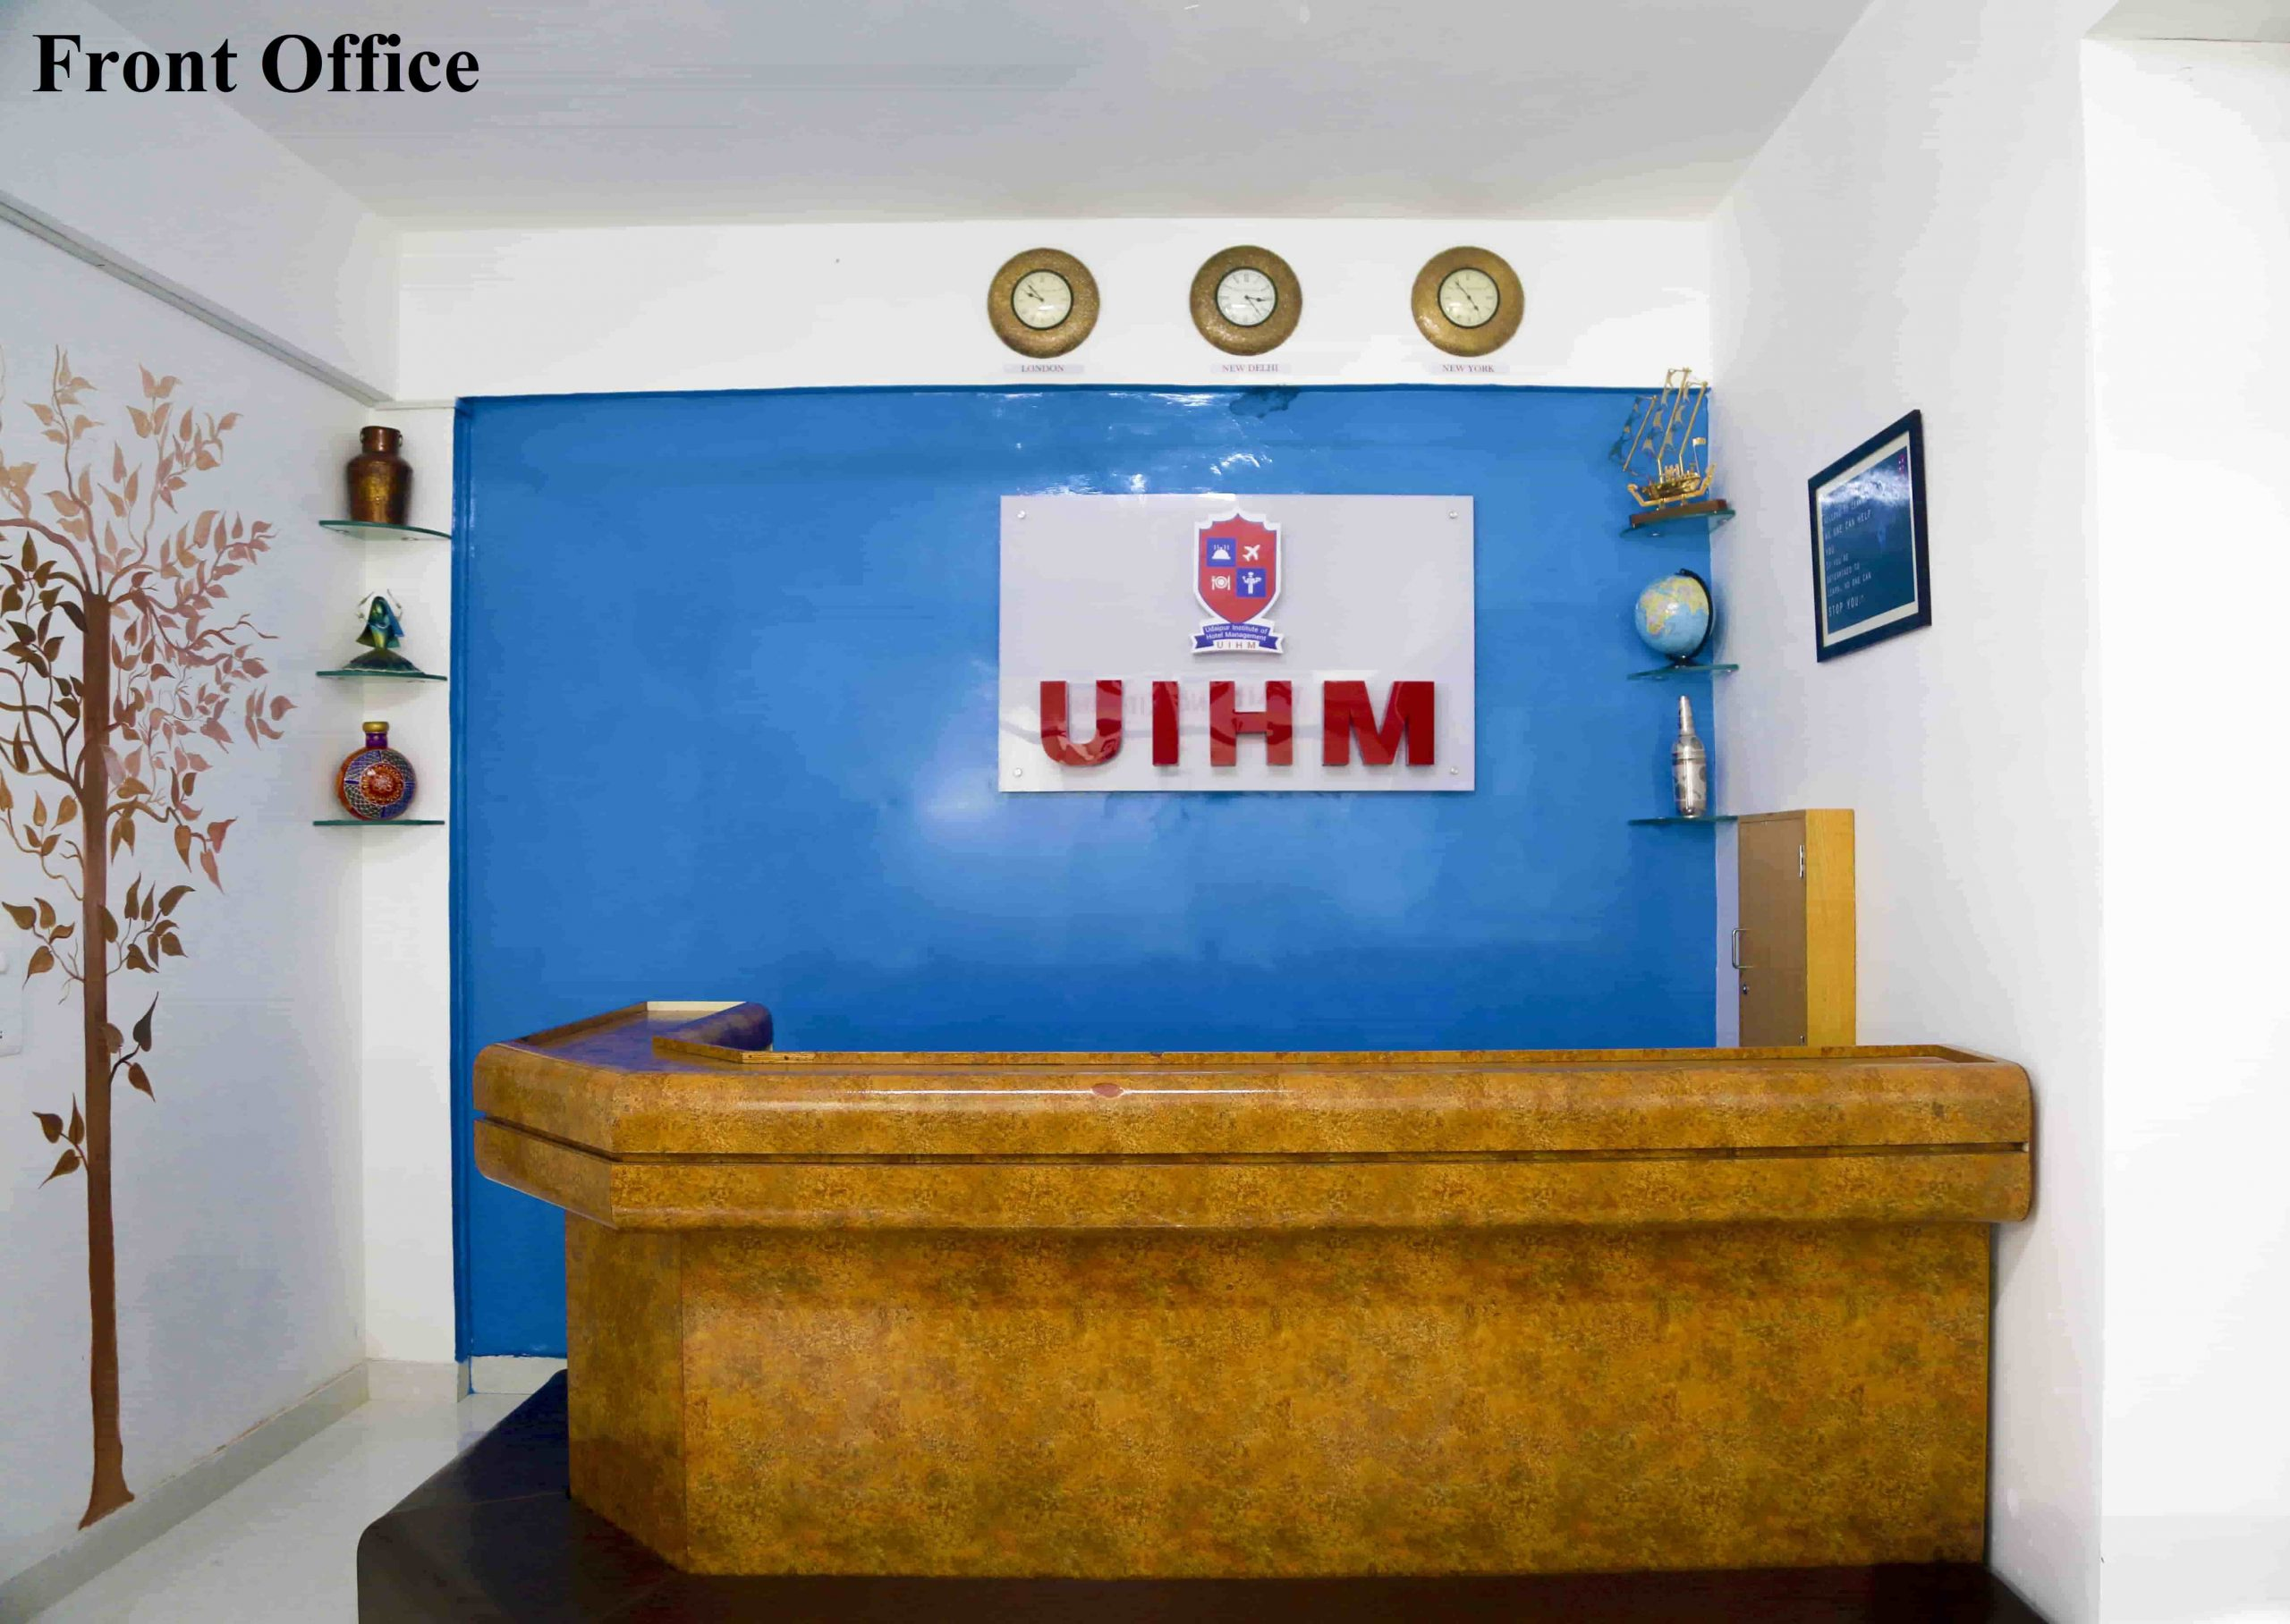 How can you enter in Hotel Management College in Udaipur